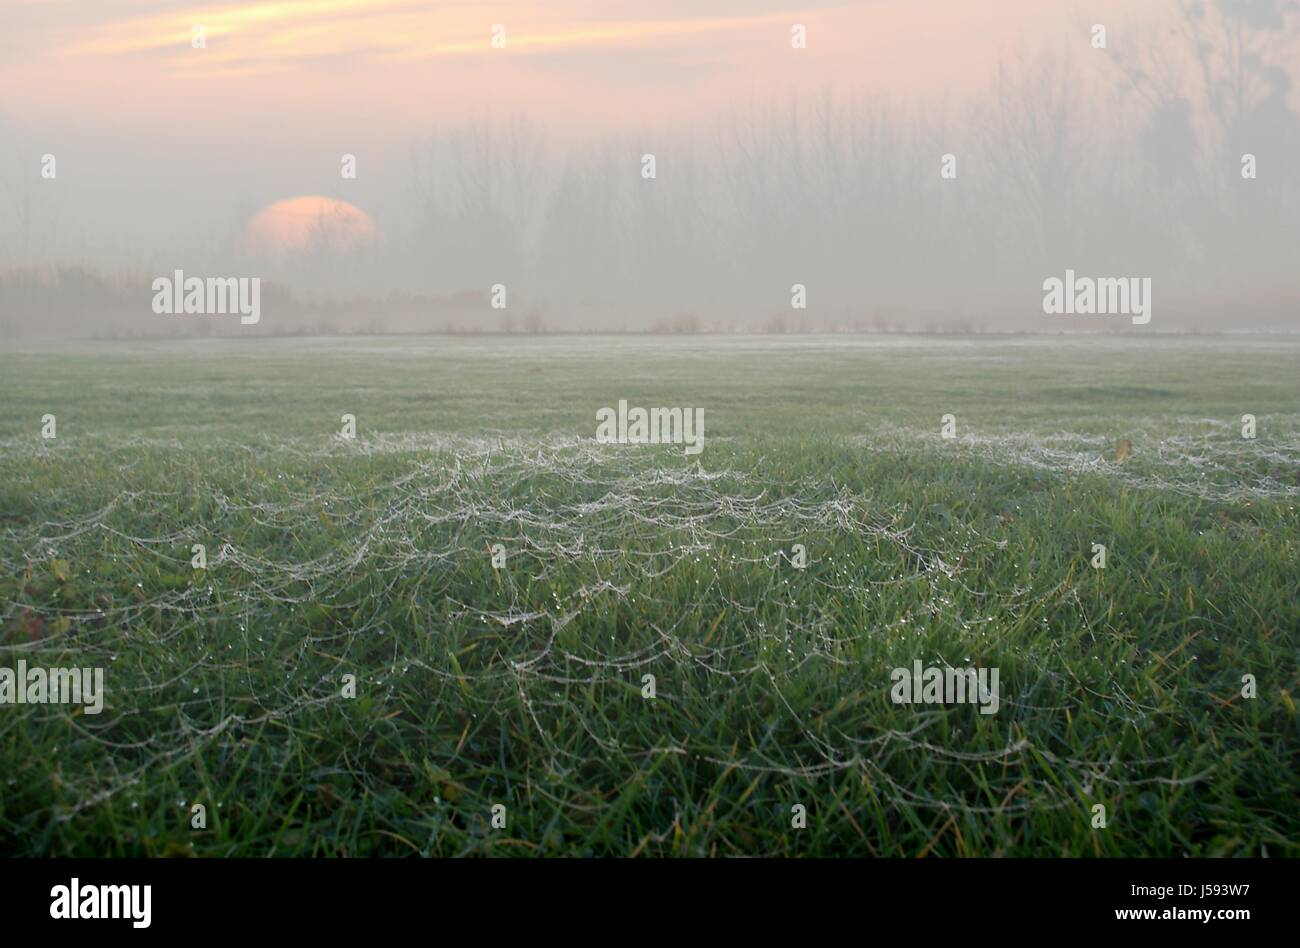 humour tree sunset agriculture farming field fog haze reed europe mood ripe - Stock Image